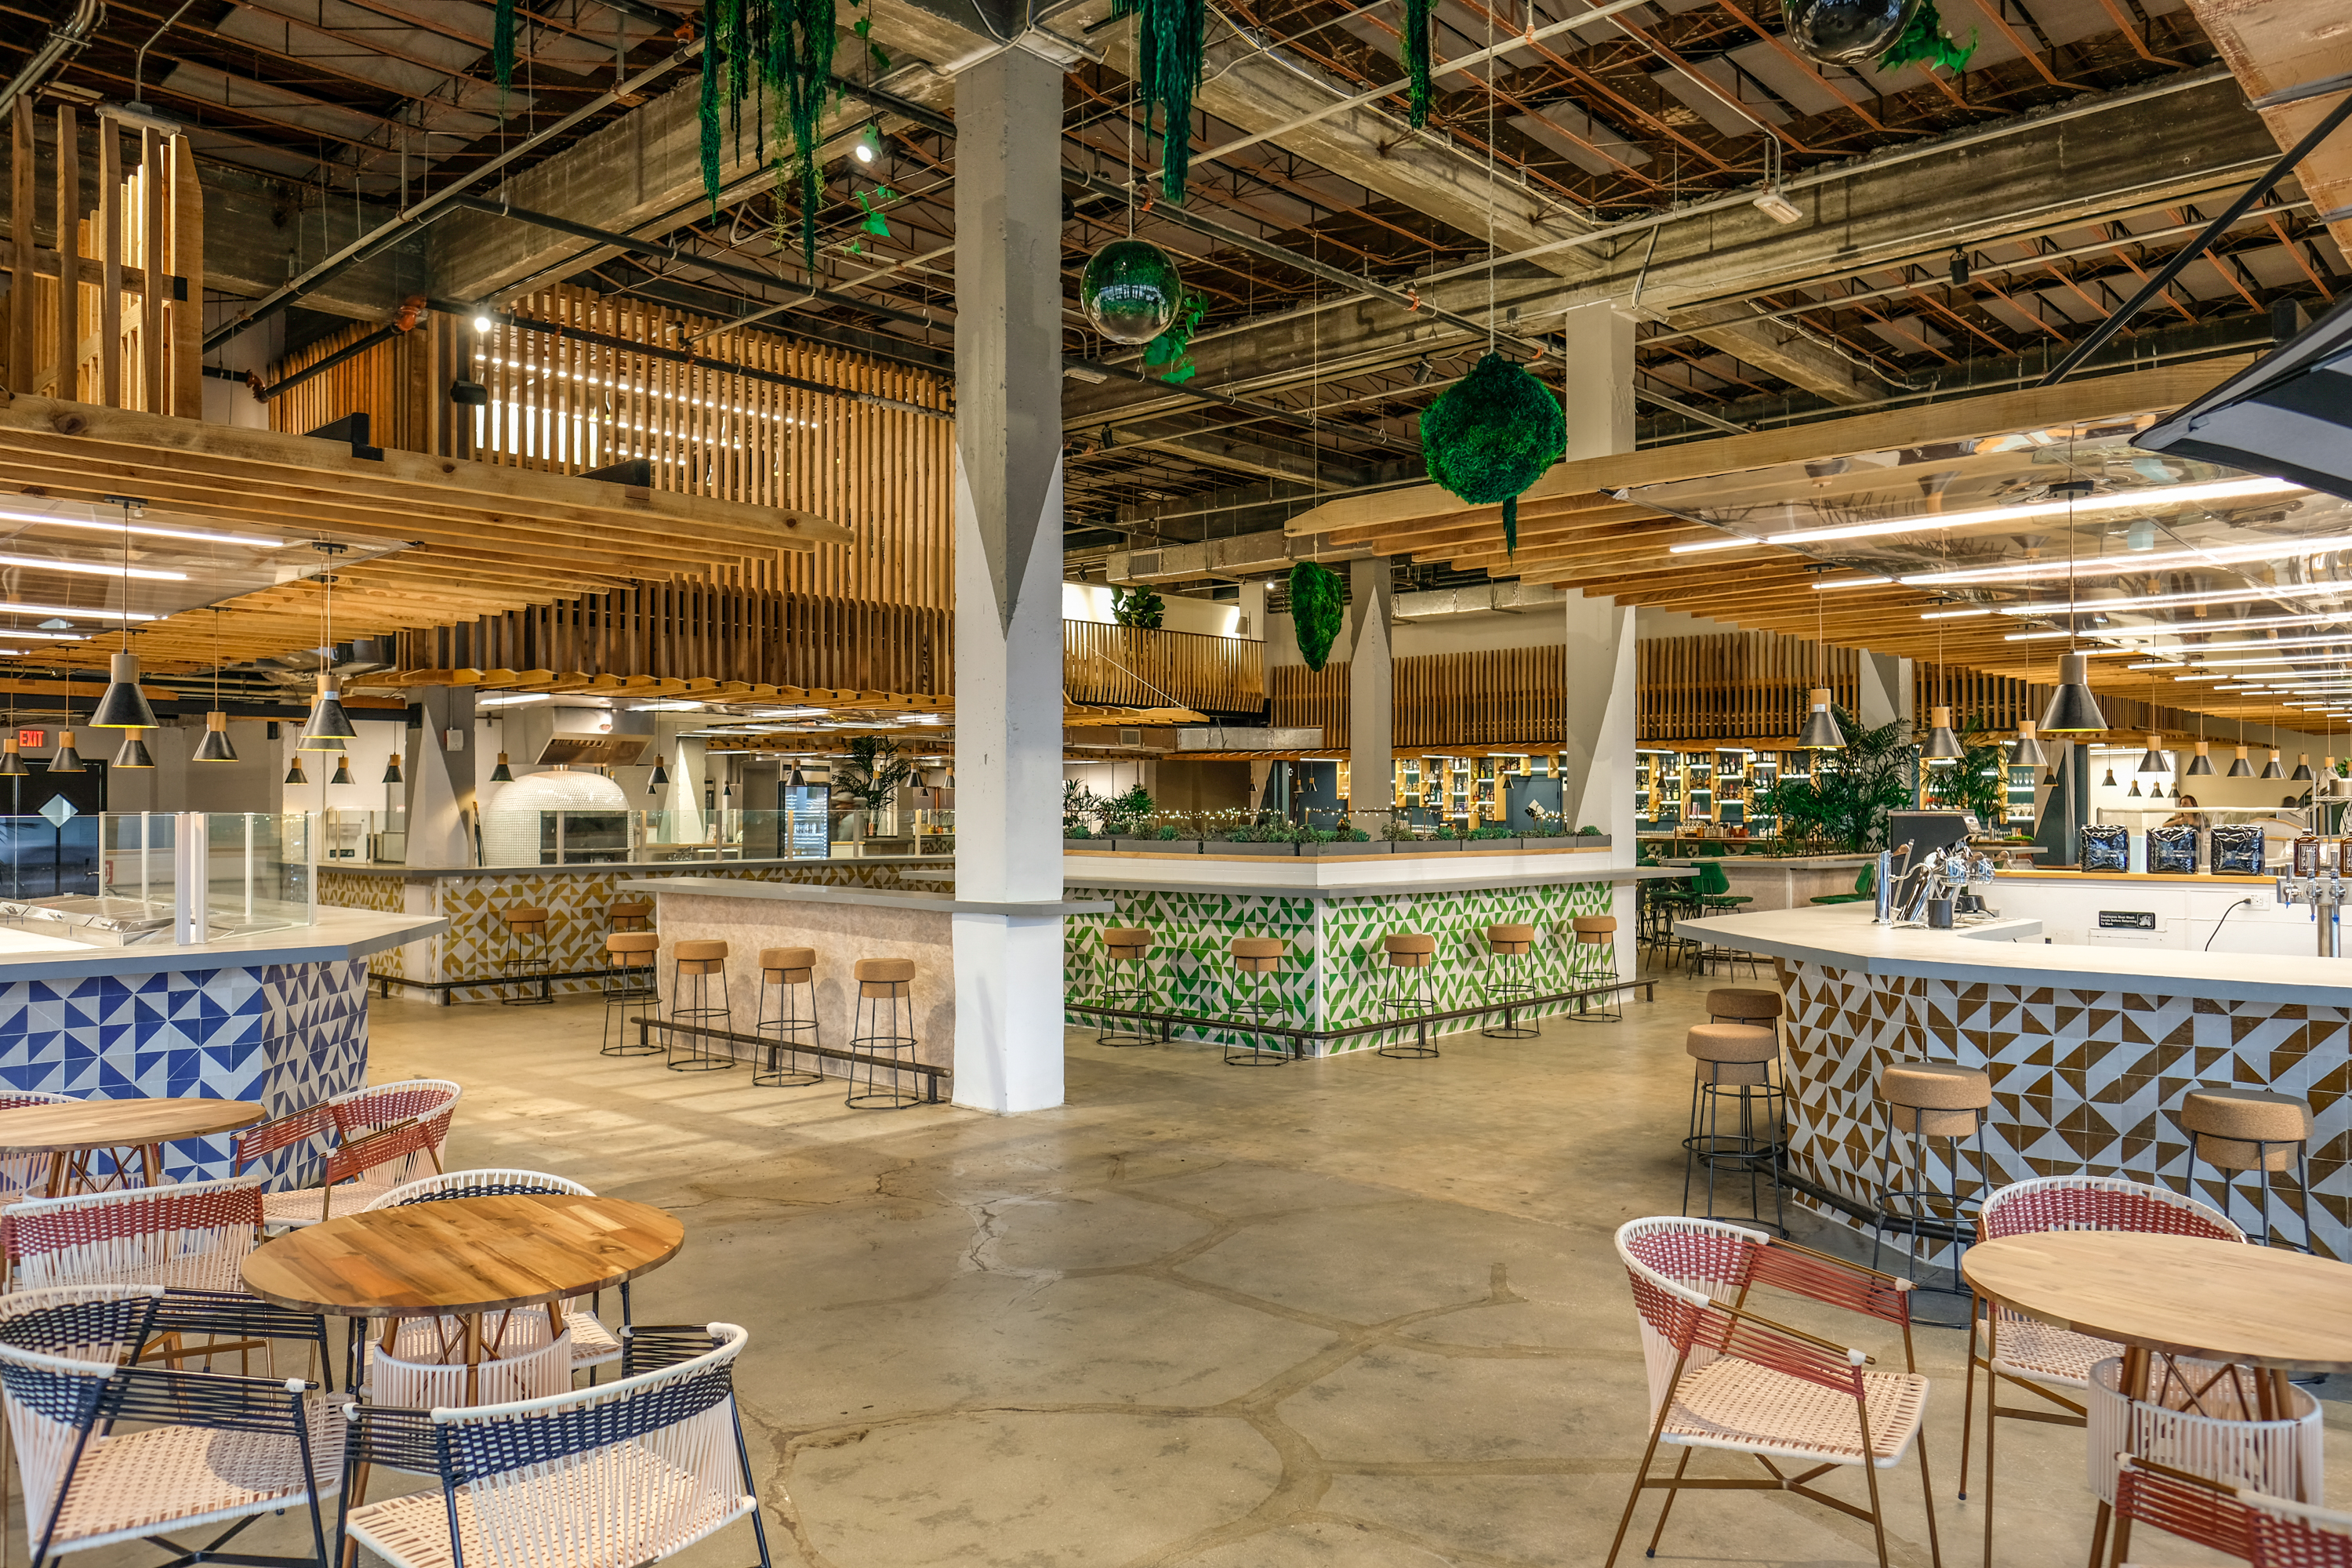 Miami's Latest Food Hall, The Citadel, Arrives in Little River